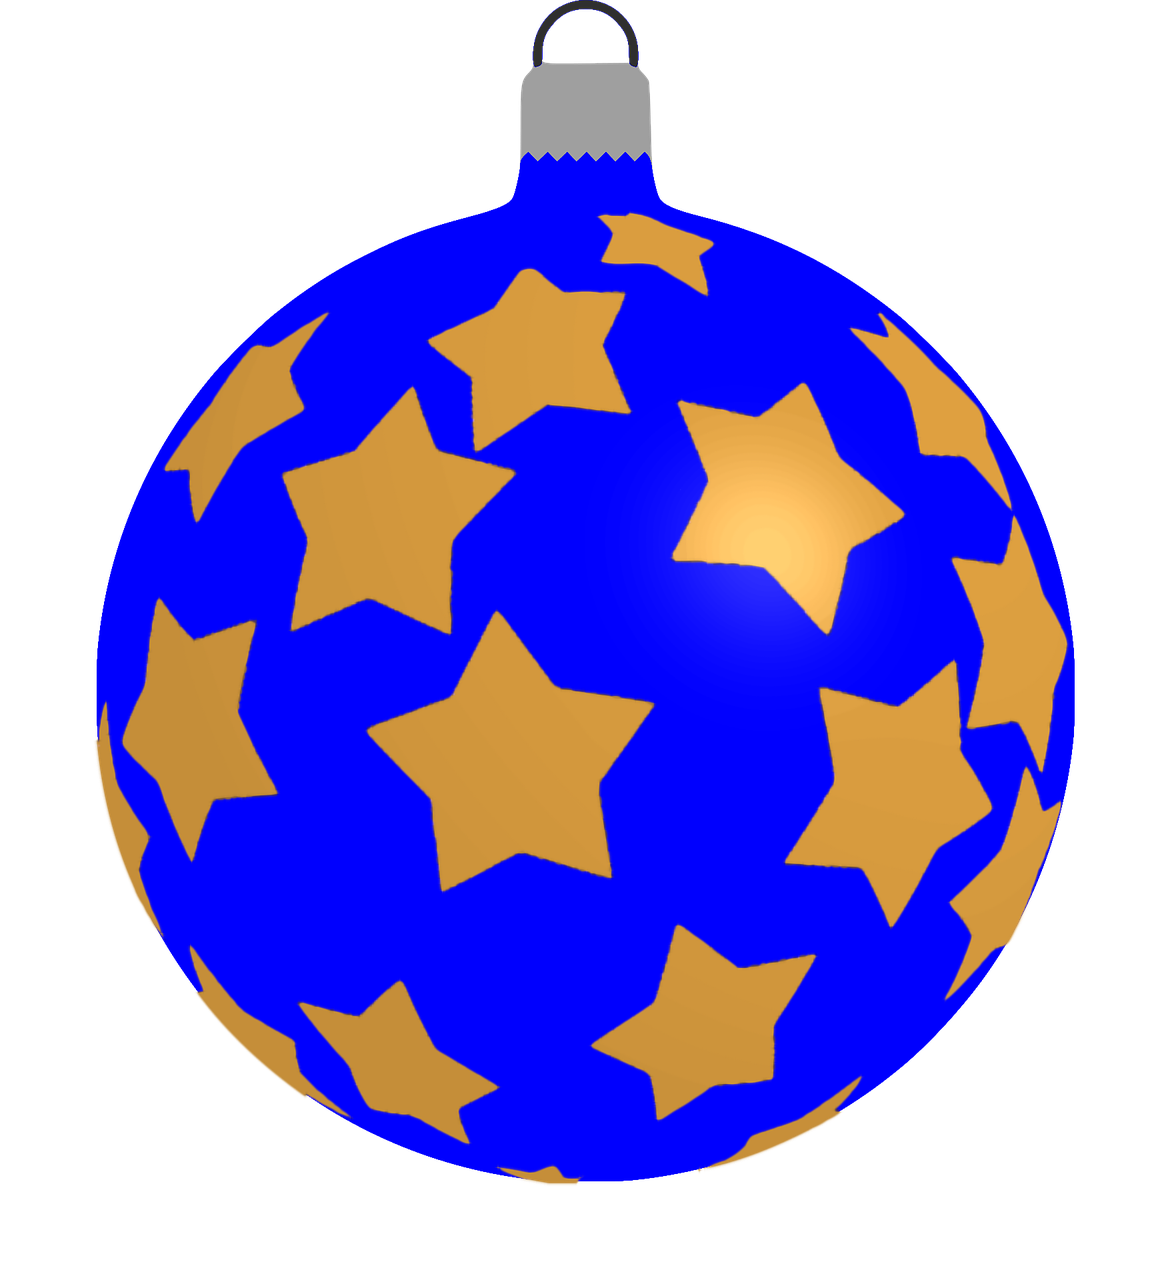 how to draw a Christmas ball, bauble 1